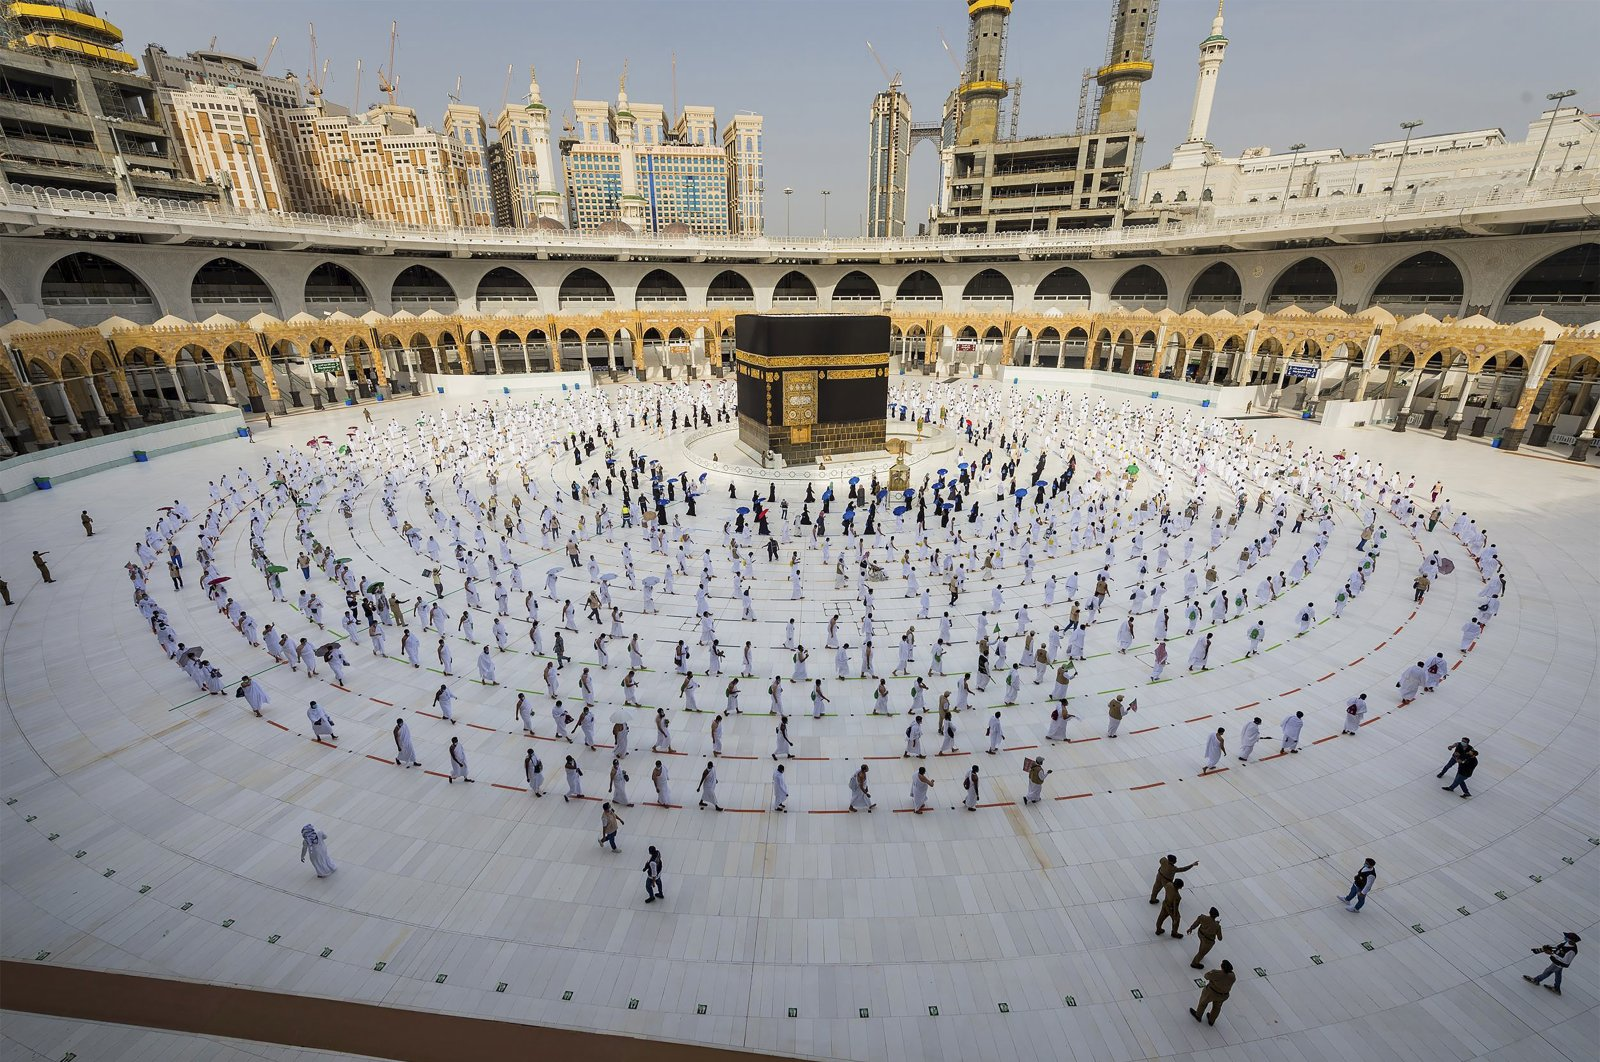 Pilgrims walk around the Kabba at the Grand Mosque in the Muslim holy city of Mecca, Saudi Arabia, July 31, 2020. (AP Photo)